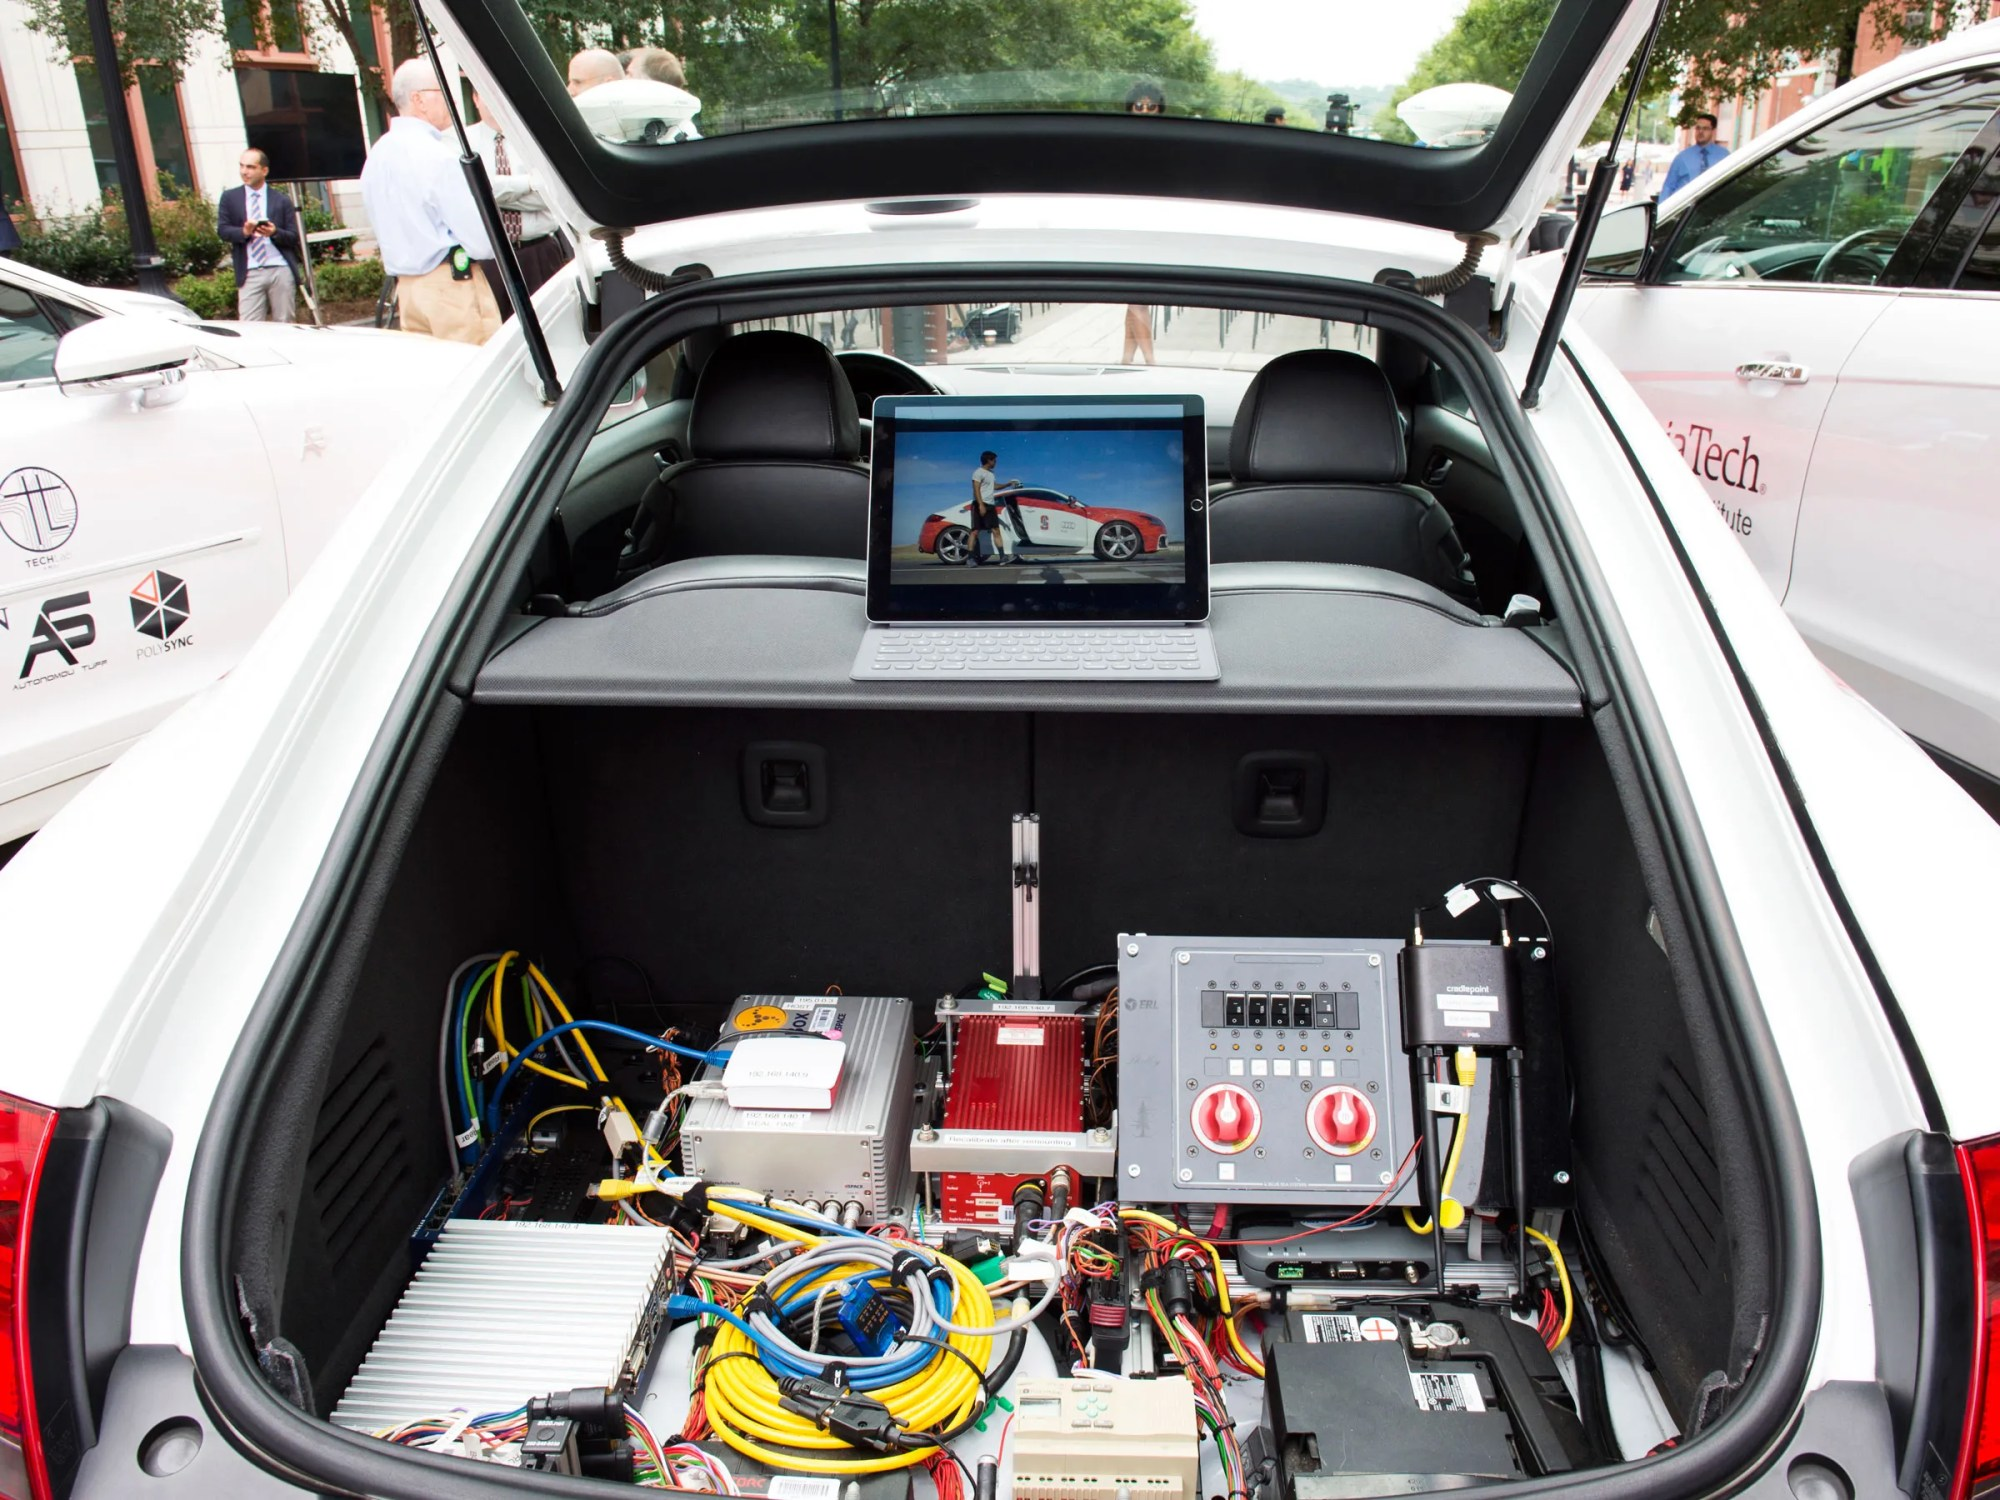 hight resolution of crazy wiring on cars wiring diagram autovehicleself driving cars u0027 massive power consumption is